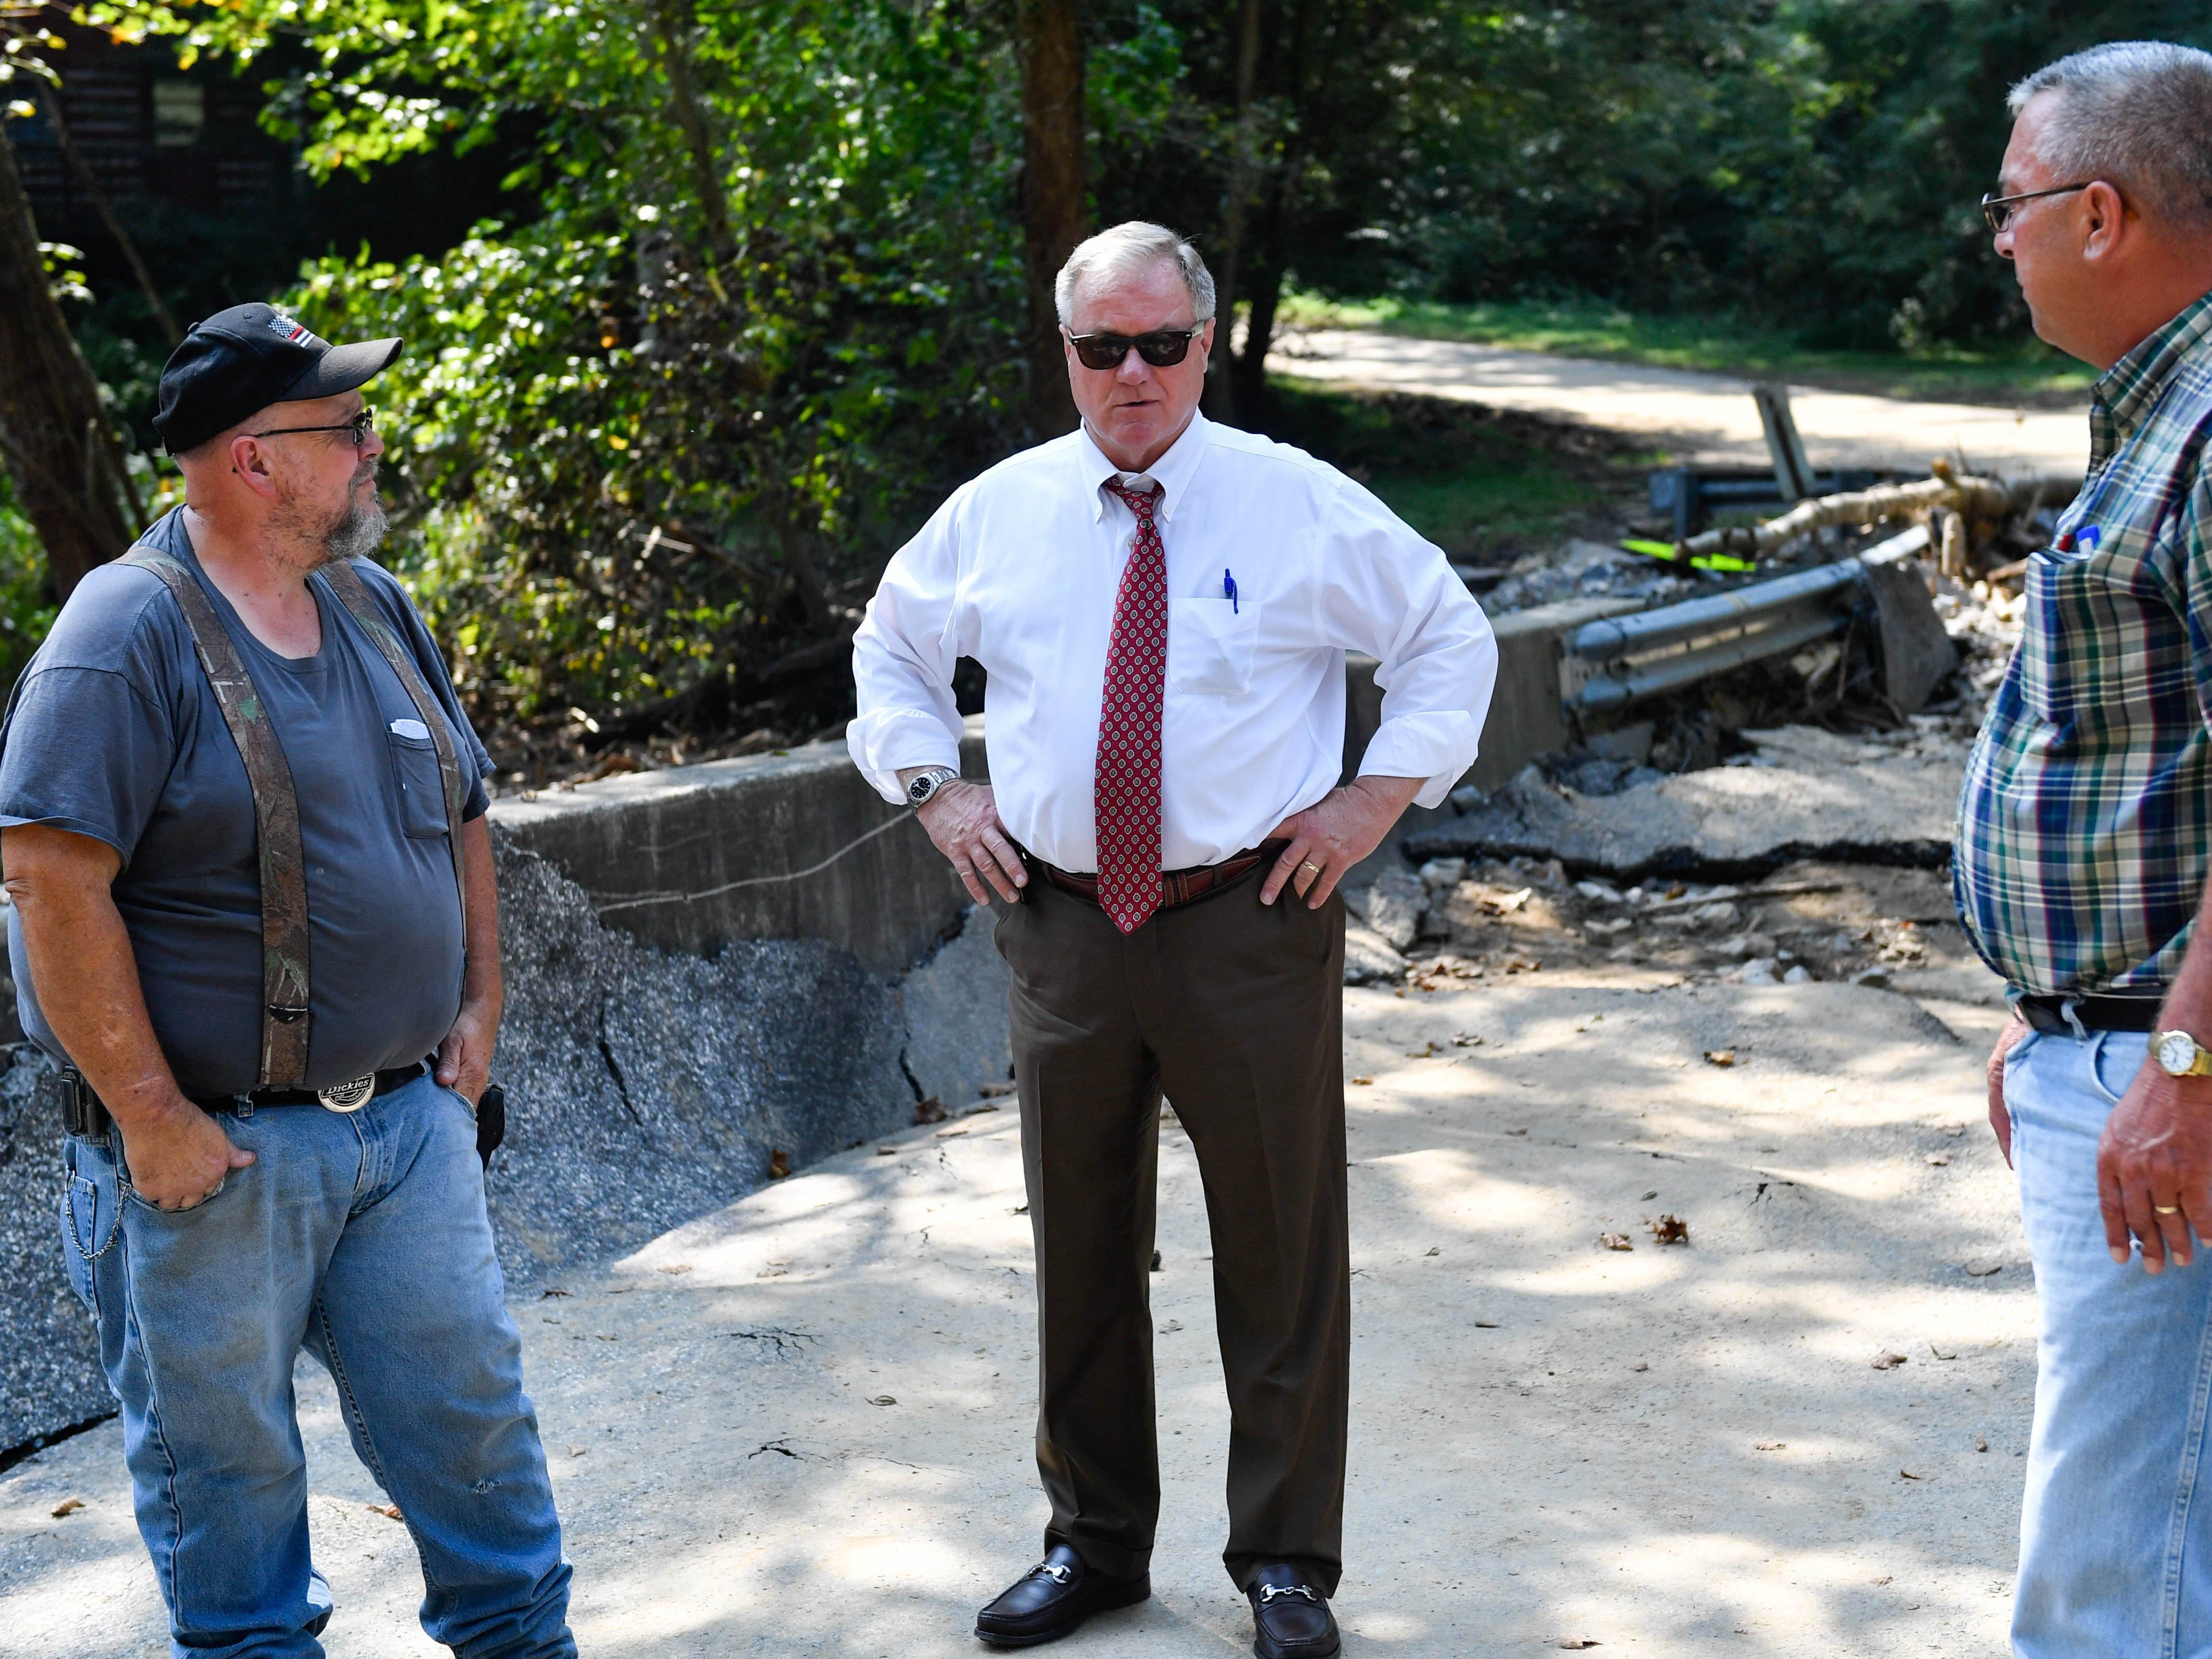 New Bridgeville Fire Chief Ron Witmer (left), former state senator Scott Wagner (middle) and Chanceford Township Supervisor Dave Warner discuss the extent of the flood damages on Thursday, September 6, 2018.